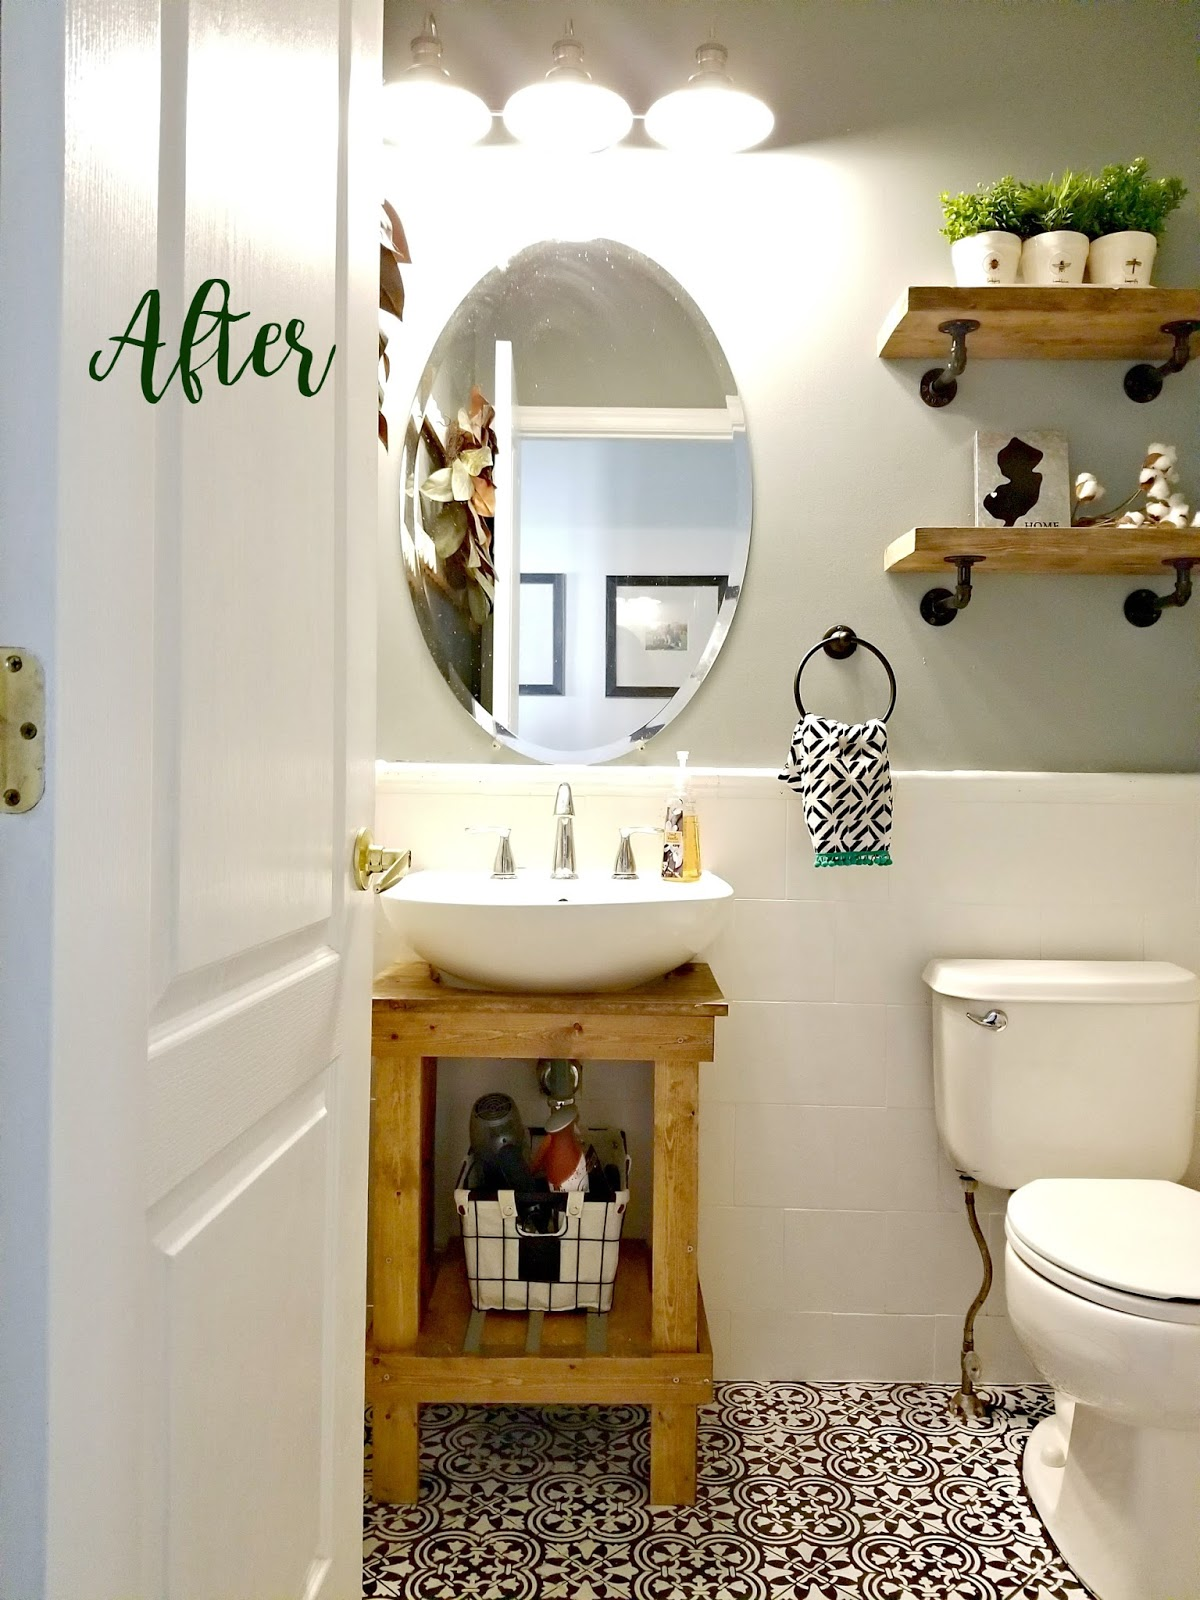 Cure 4 decor paint a tile floor a rustic powder room makeover excuse to try using a stencil on the floor like susanna did at livin the life of riley blog check out her awesome results and how she painted her tile dailygadgetfo Gallery